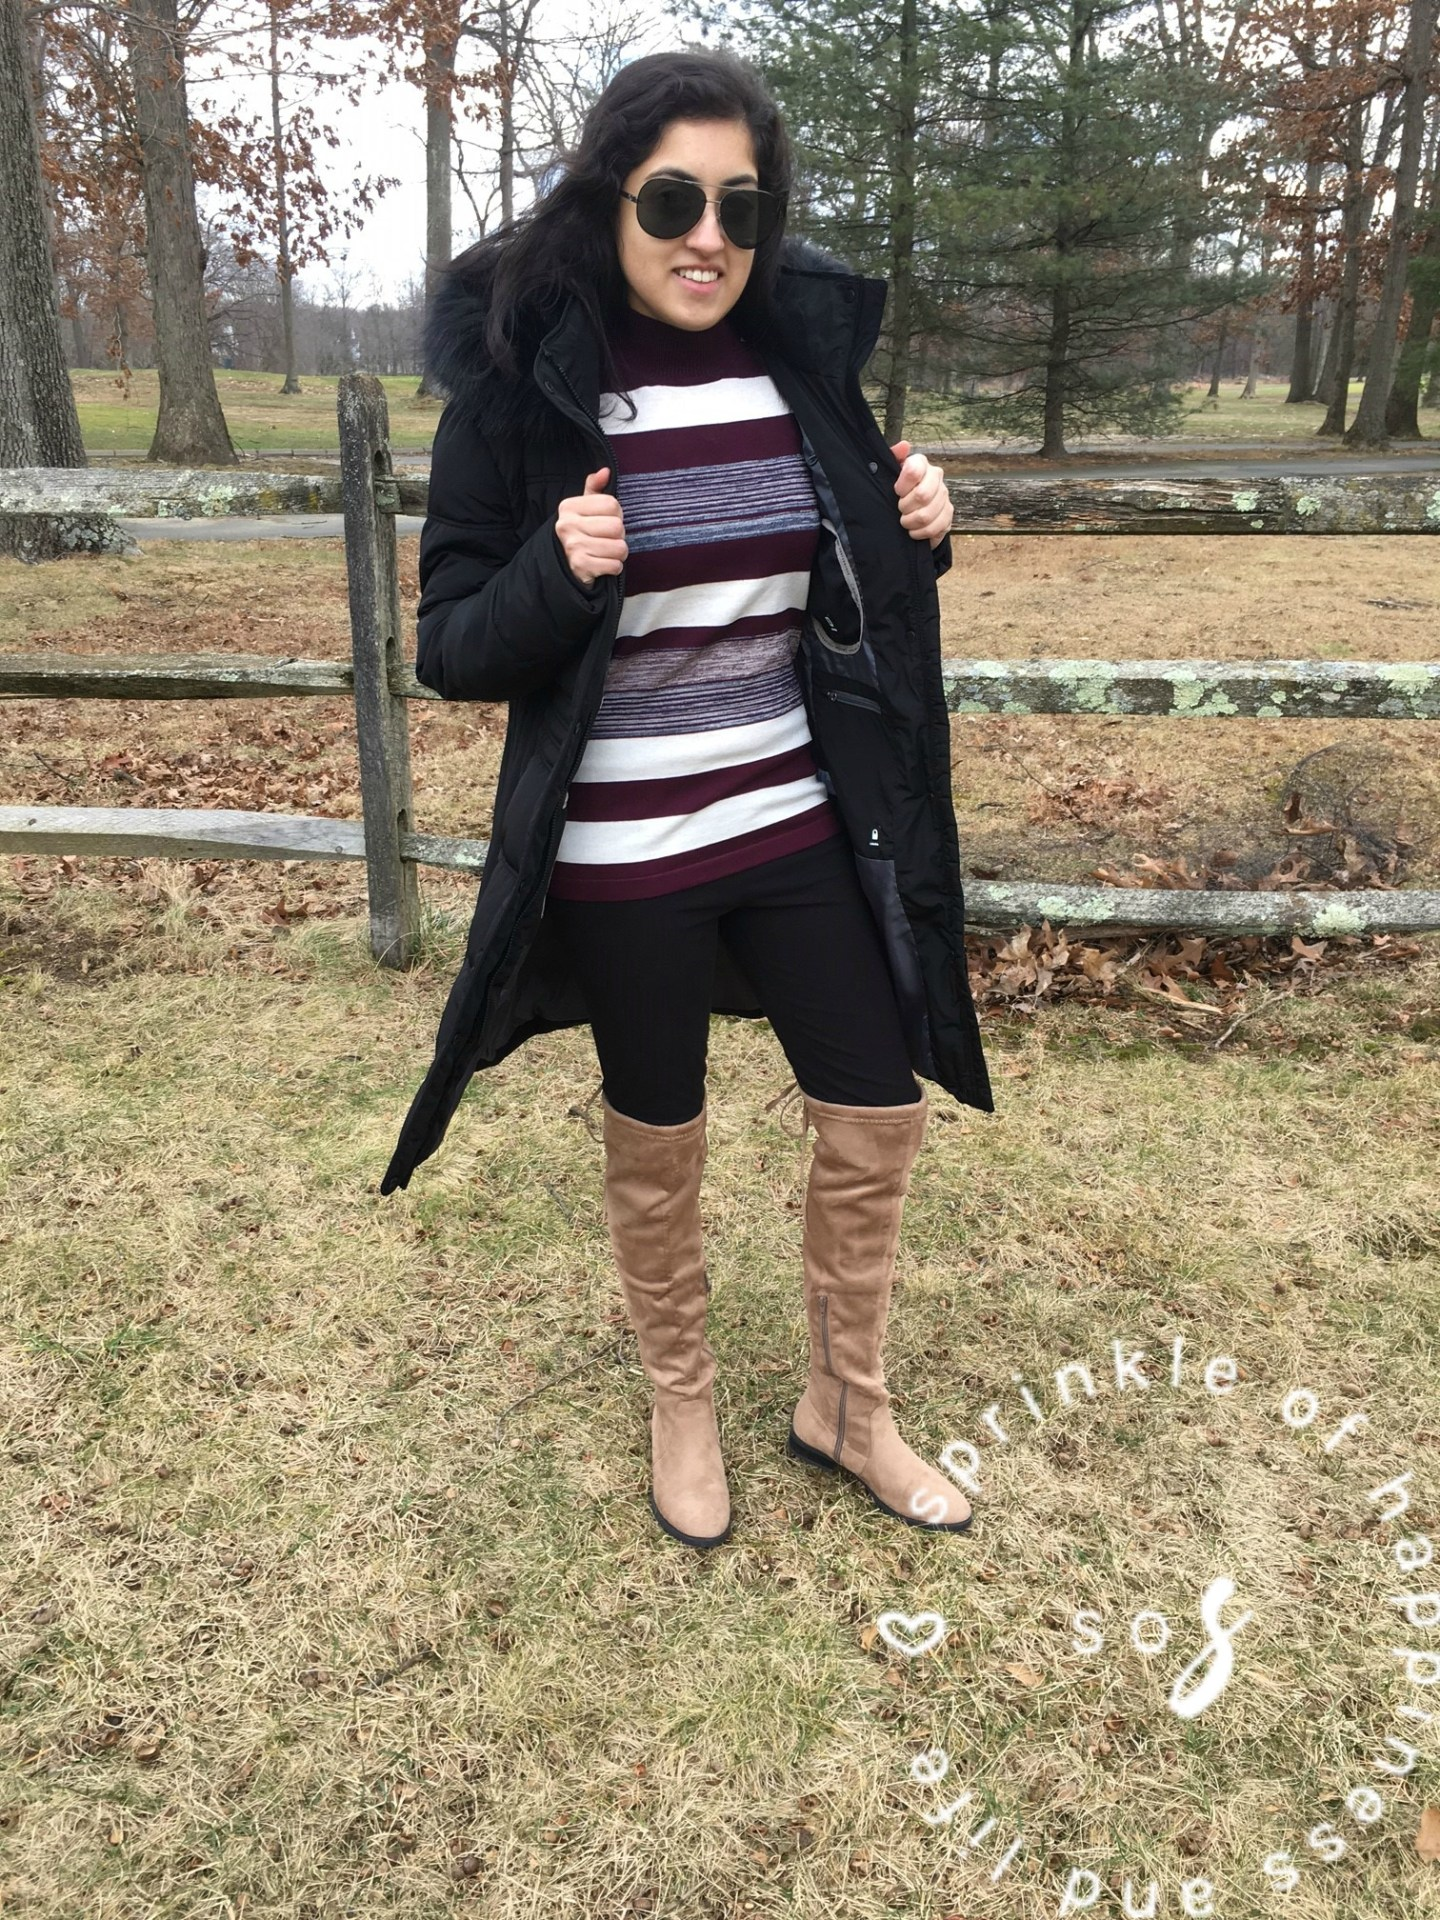 Cold Shoulder + OTK Boots! #ootd for Valentine's Day!